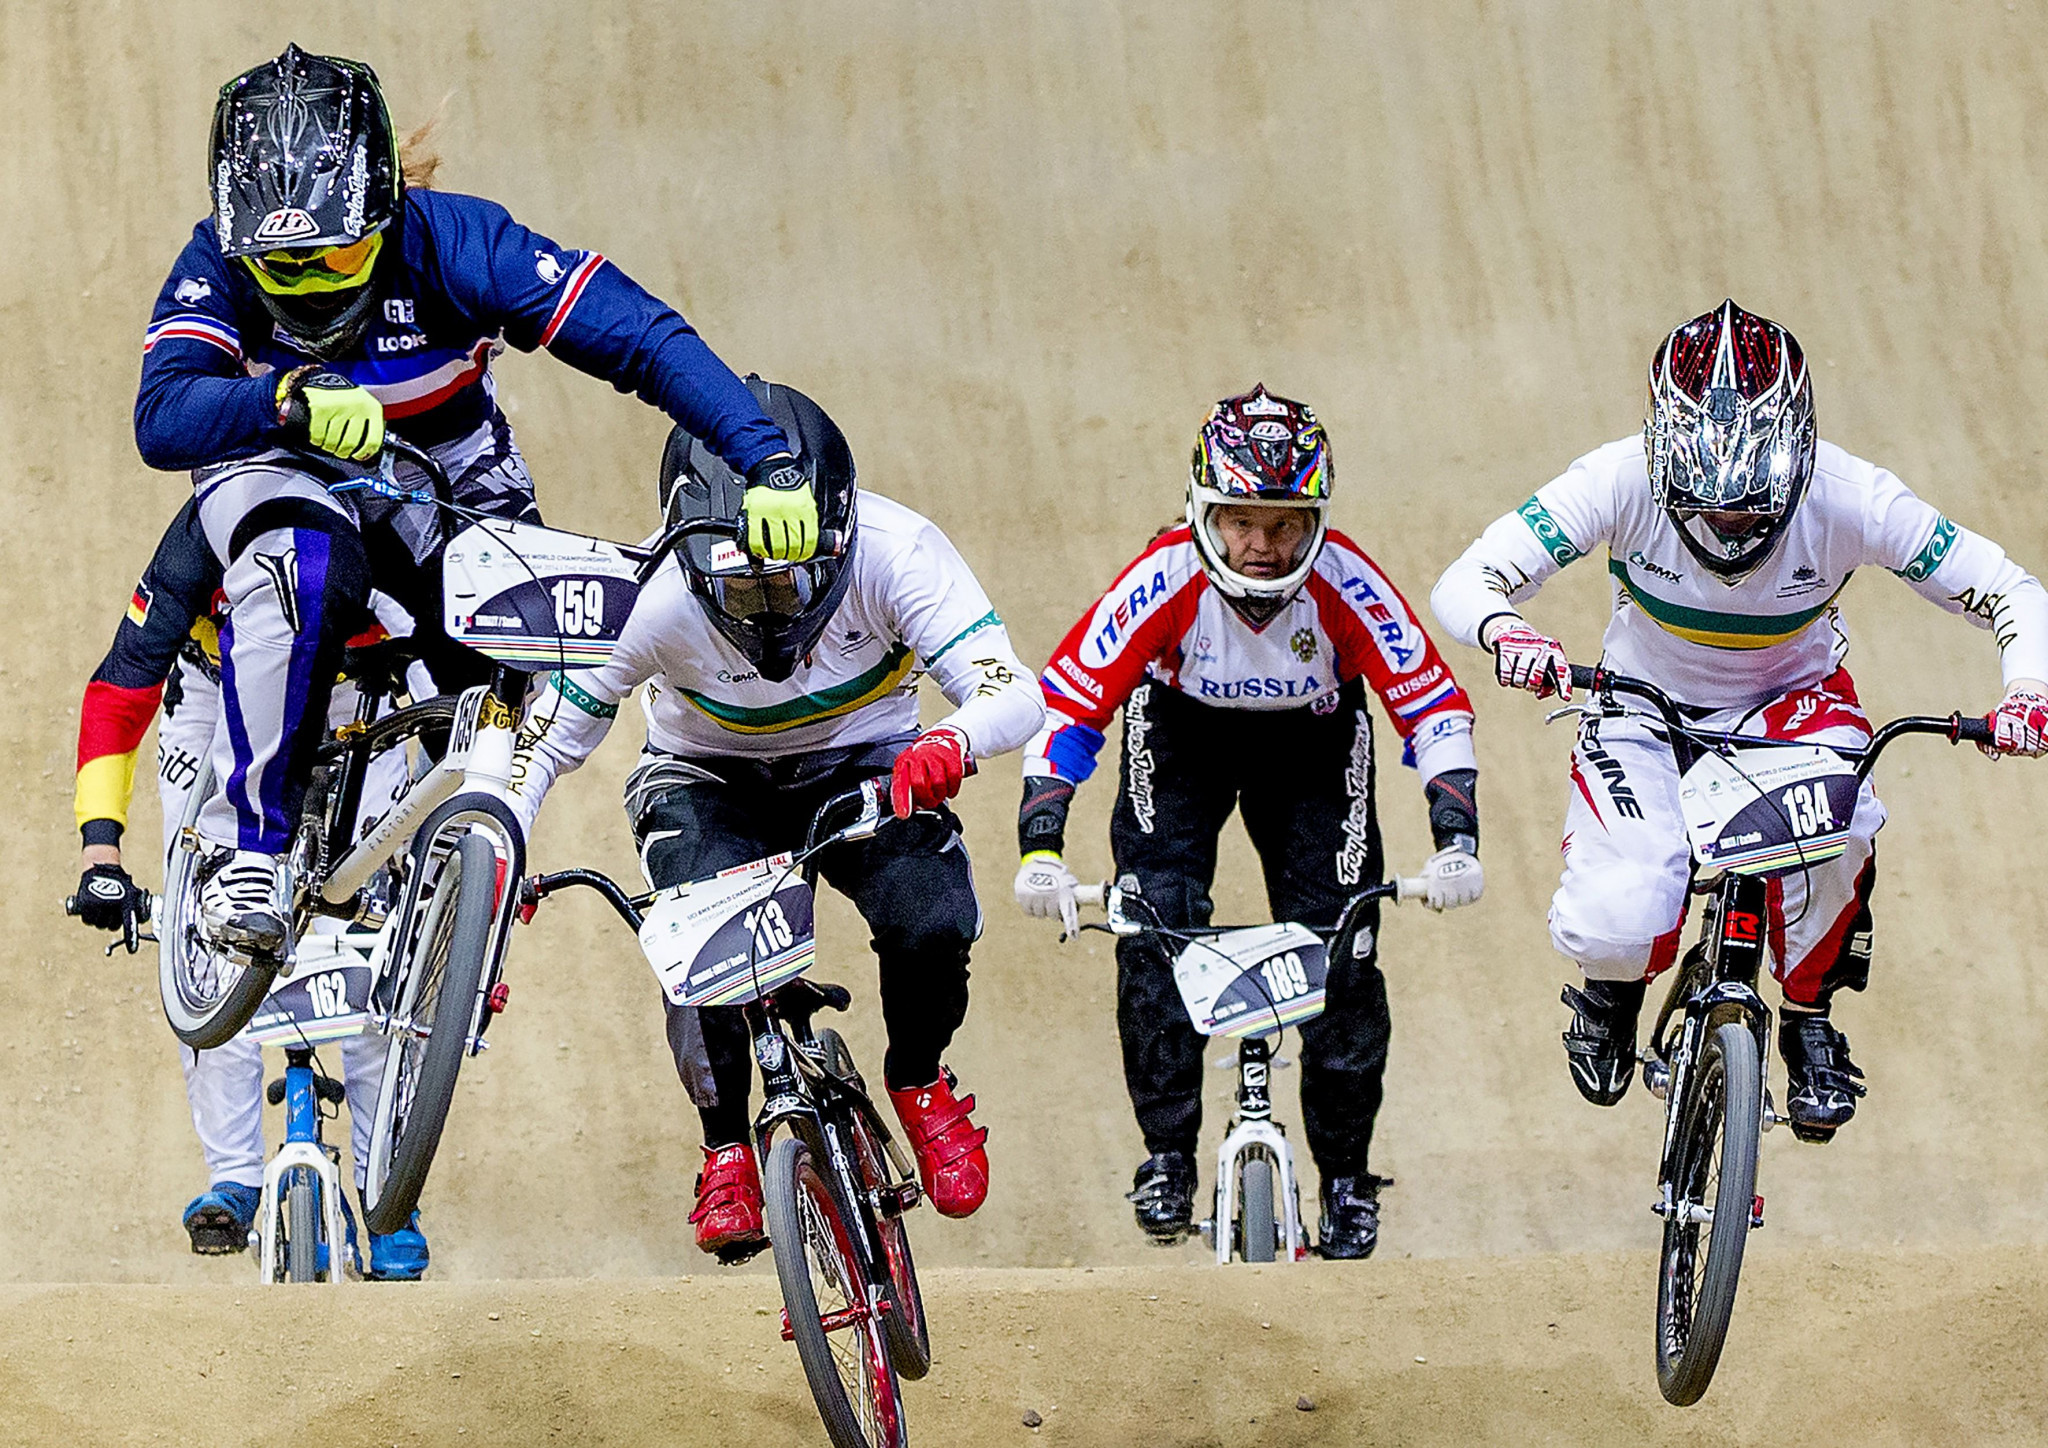 BMX World Championships cancelled as UCI provide update on events